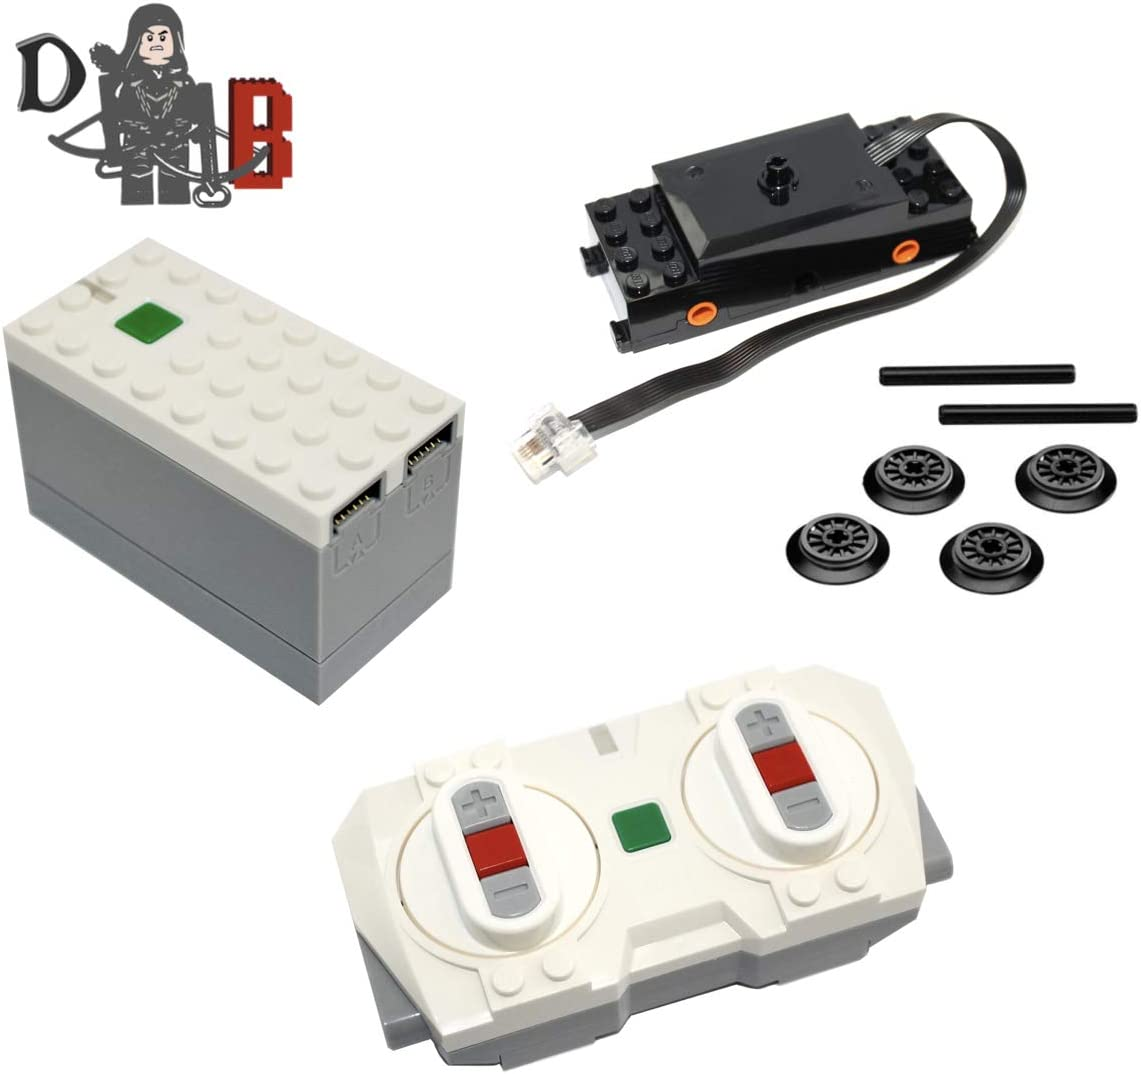 Power Functions 2.0 Powered UP Bluetooth Remote Control, Battery hub and Train Motor Kit from 60197 and 60198